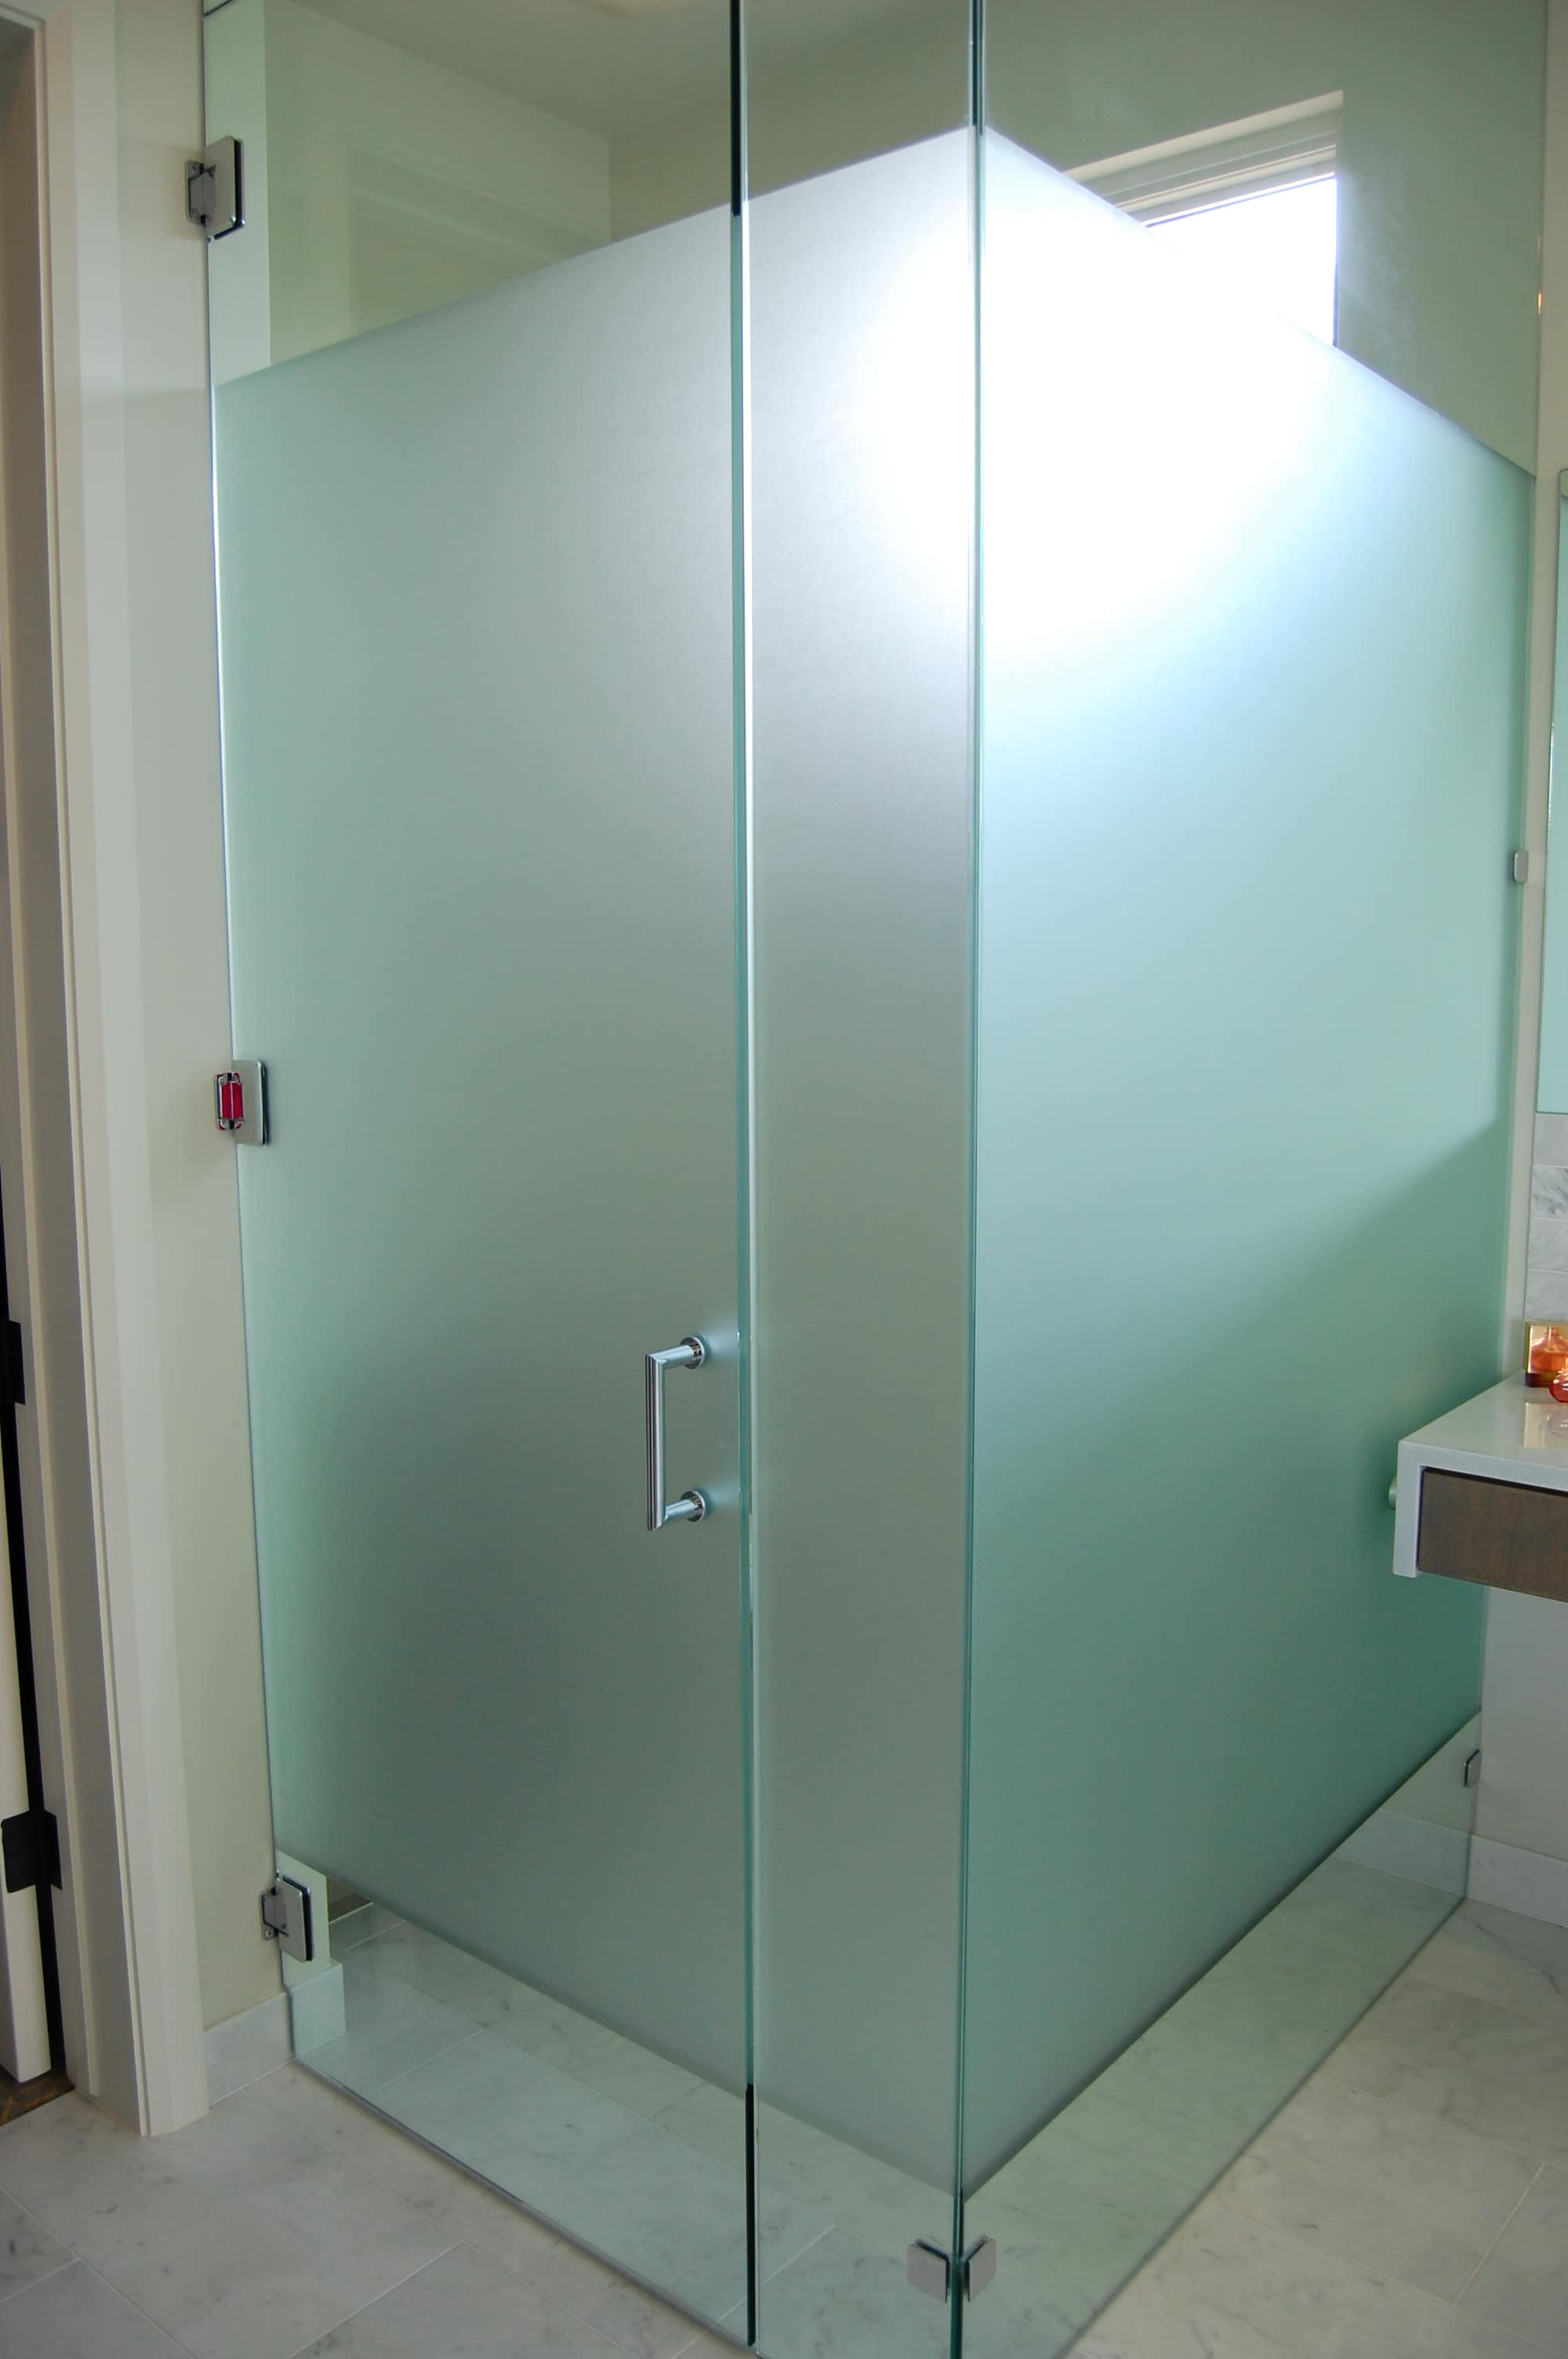 Shower glass harbor all glass mirror inc for Glass walls